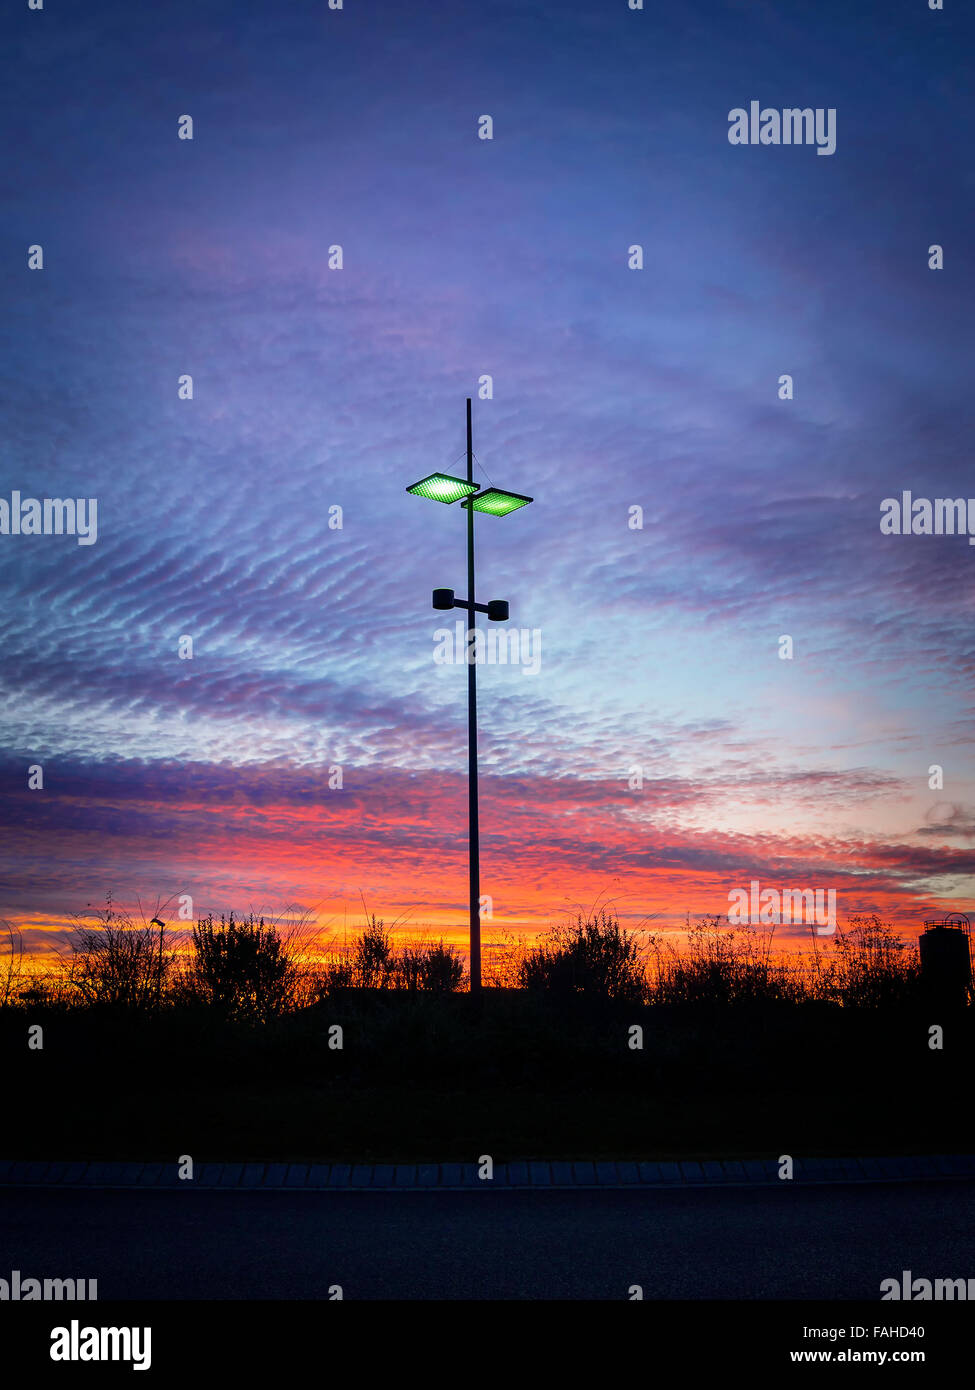 Image of a modern streetlamp at sunset - Stock Image